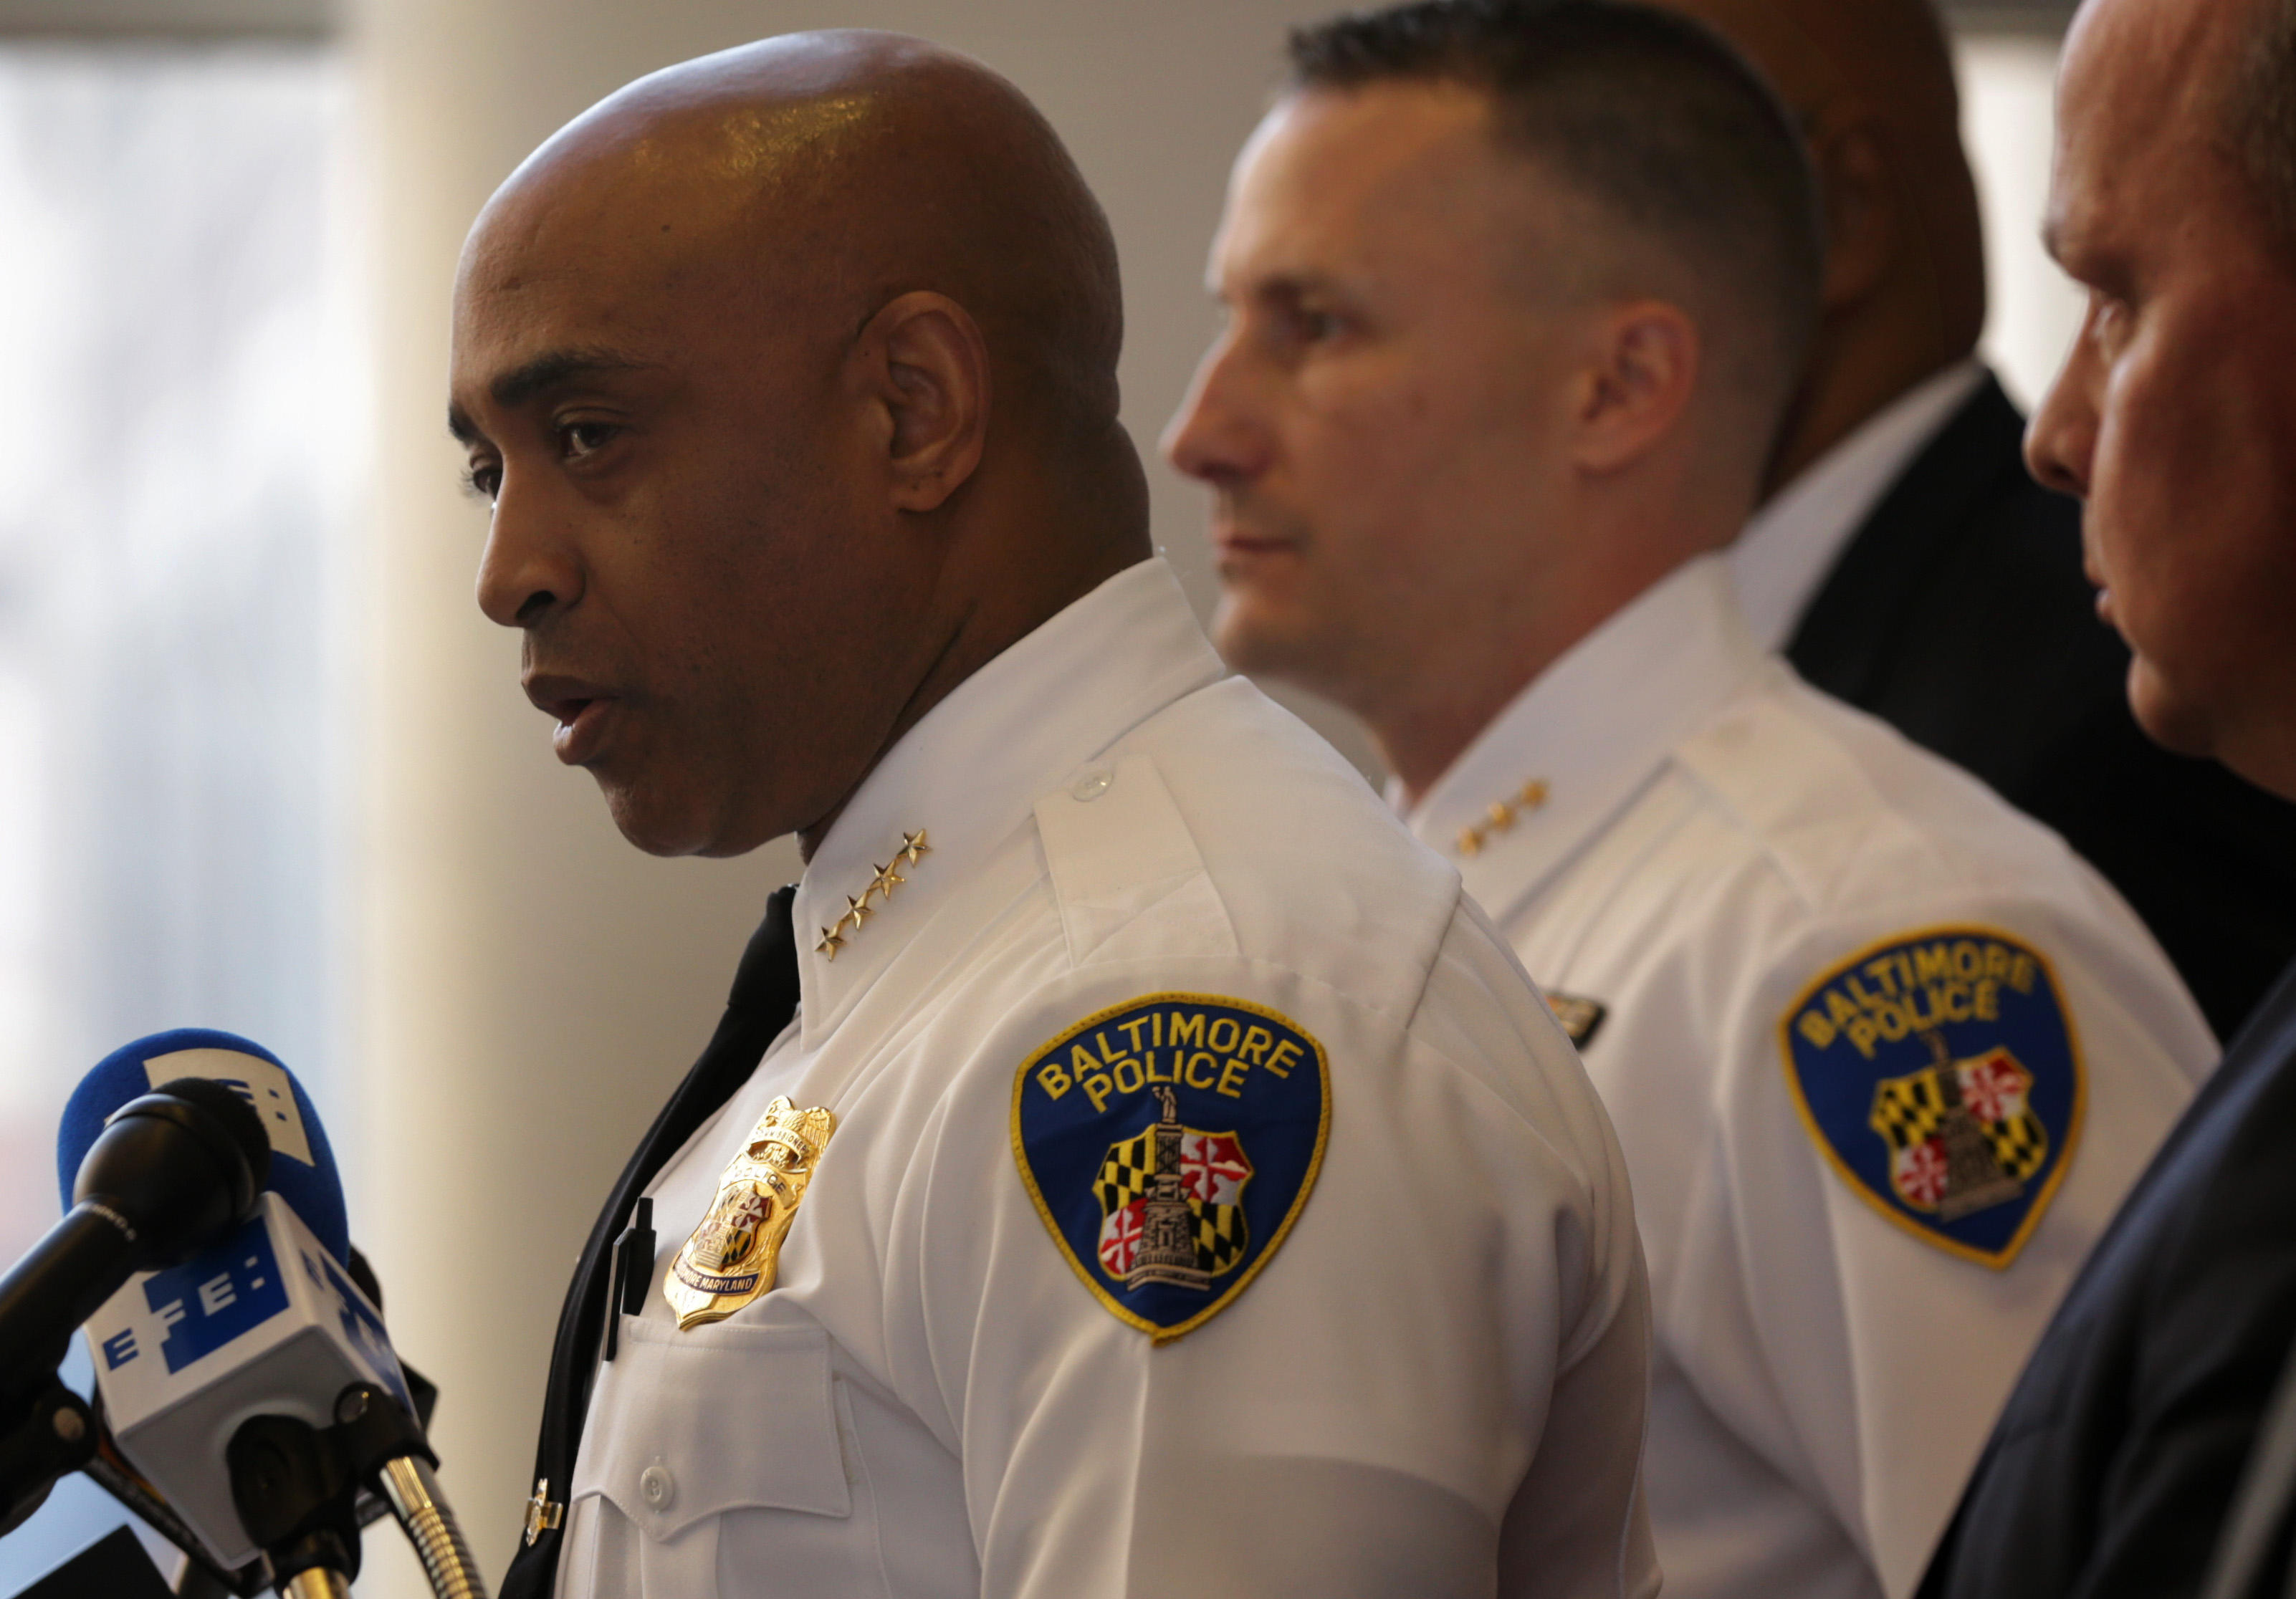 Police Commissioner Anthony Batts